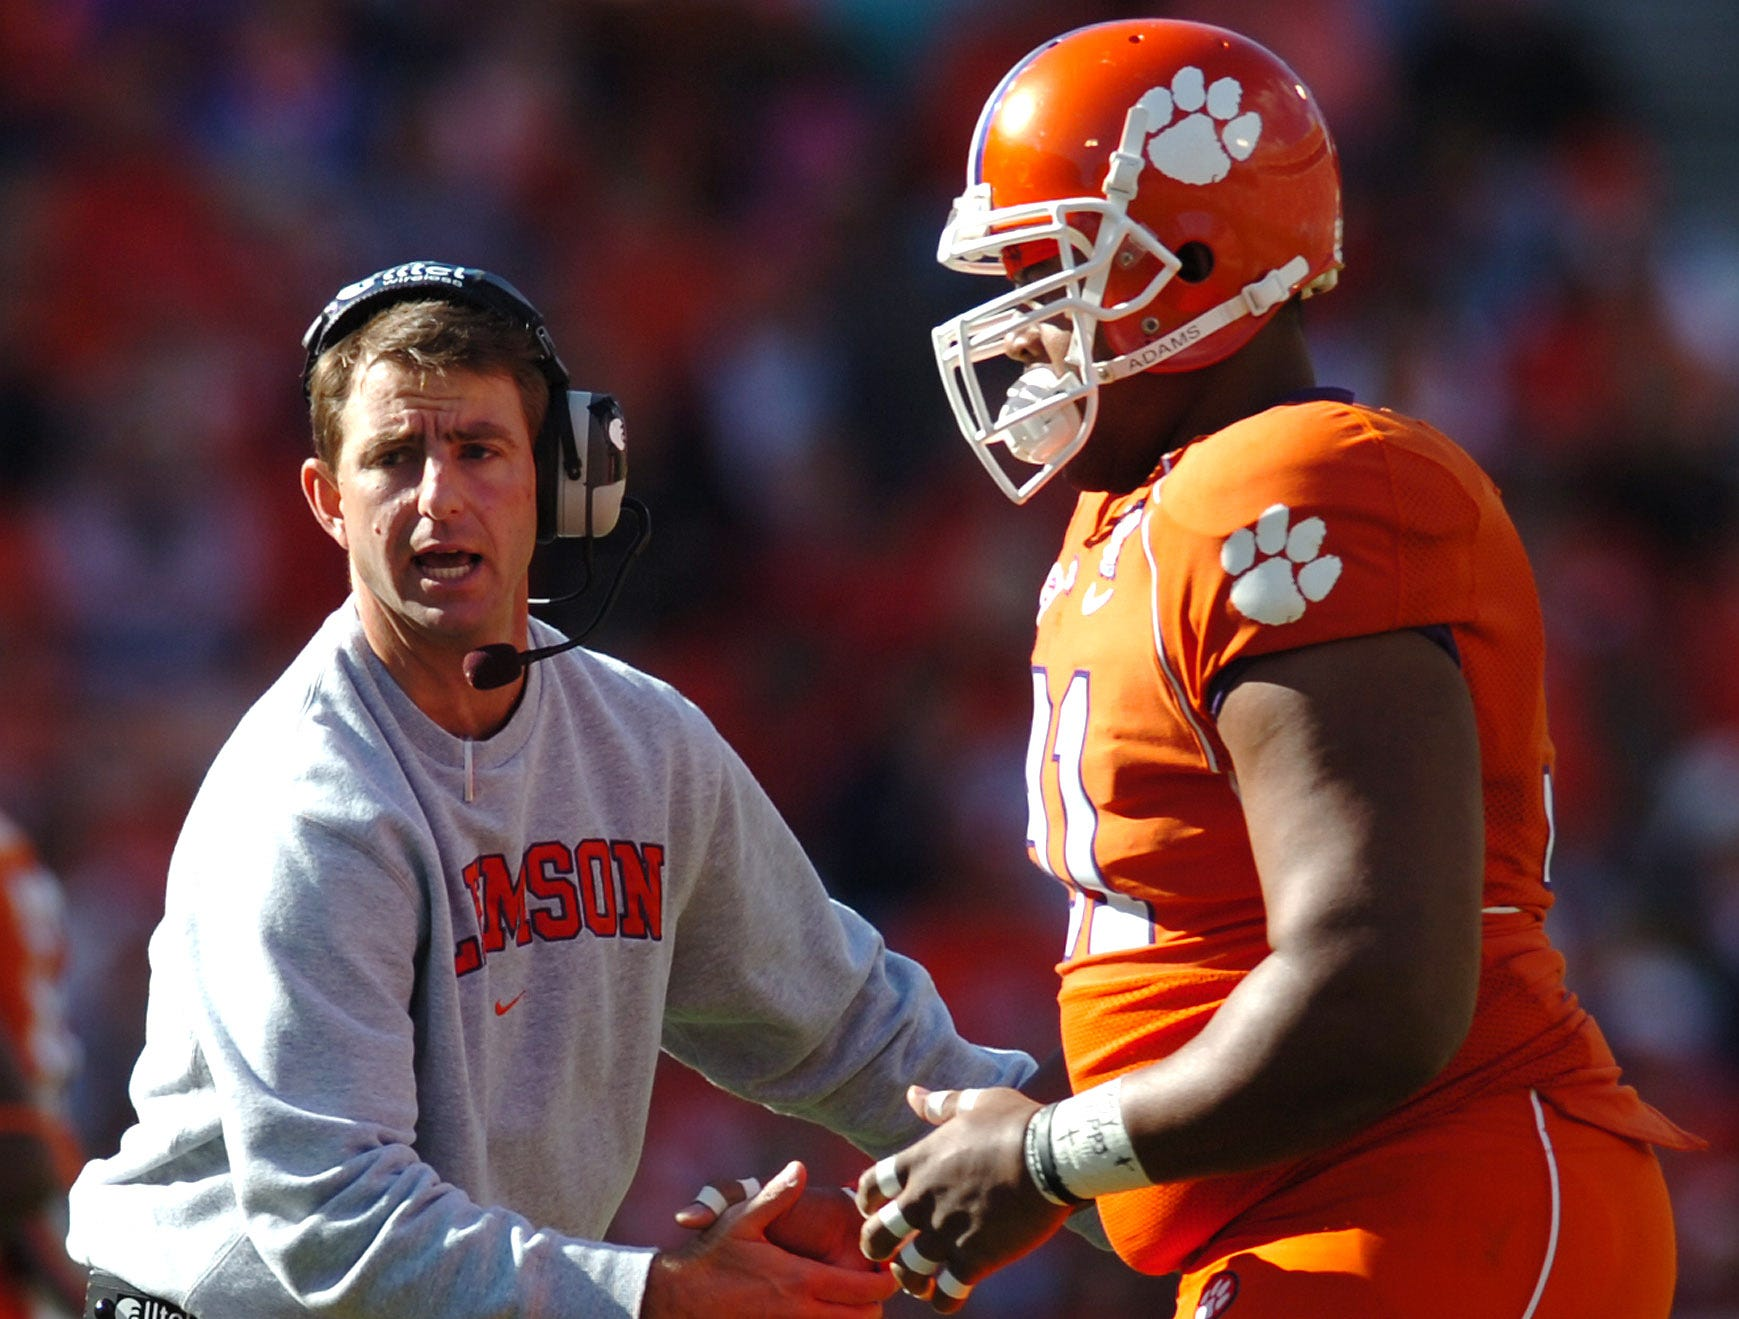 Clemson interim head coach Dabo Swinney congratulates Rashaad Jackson (91) after the defense stopped Duke during the 2nd quarter  Saturday, November 15, 2008 at Clemson's Memorial Stadium in Clemson, SC.